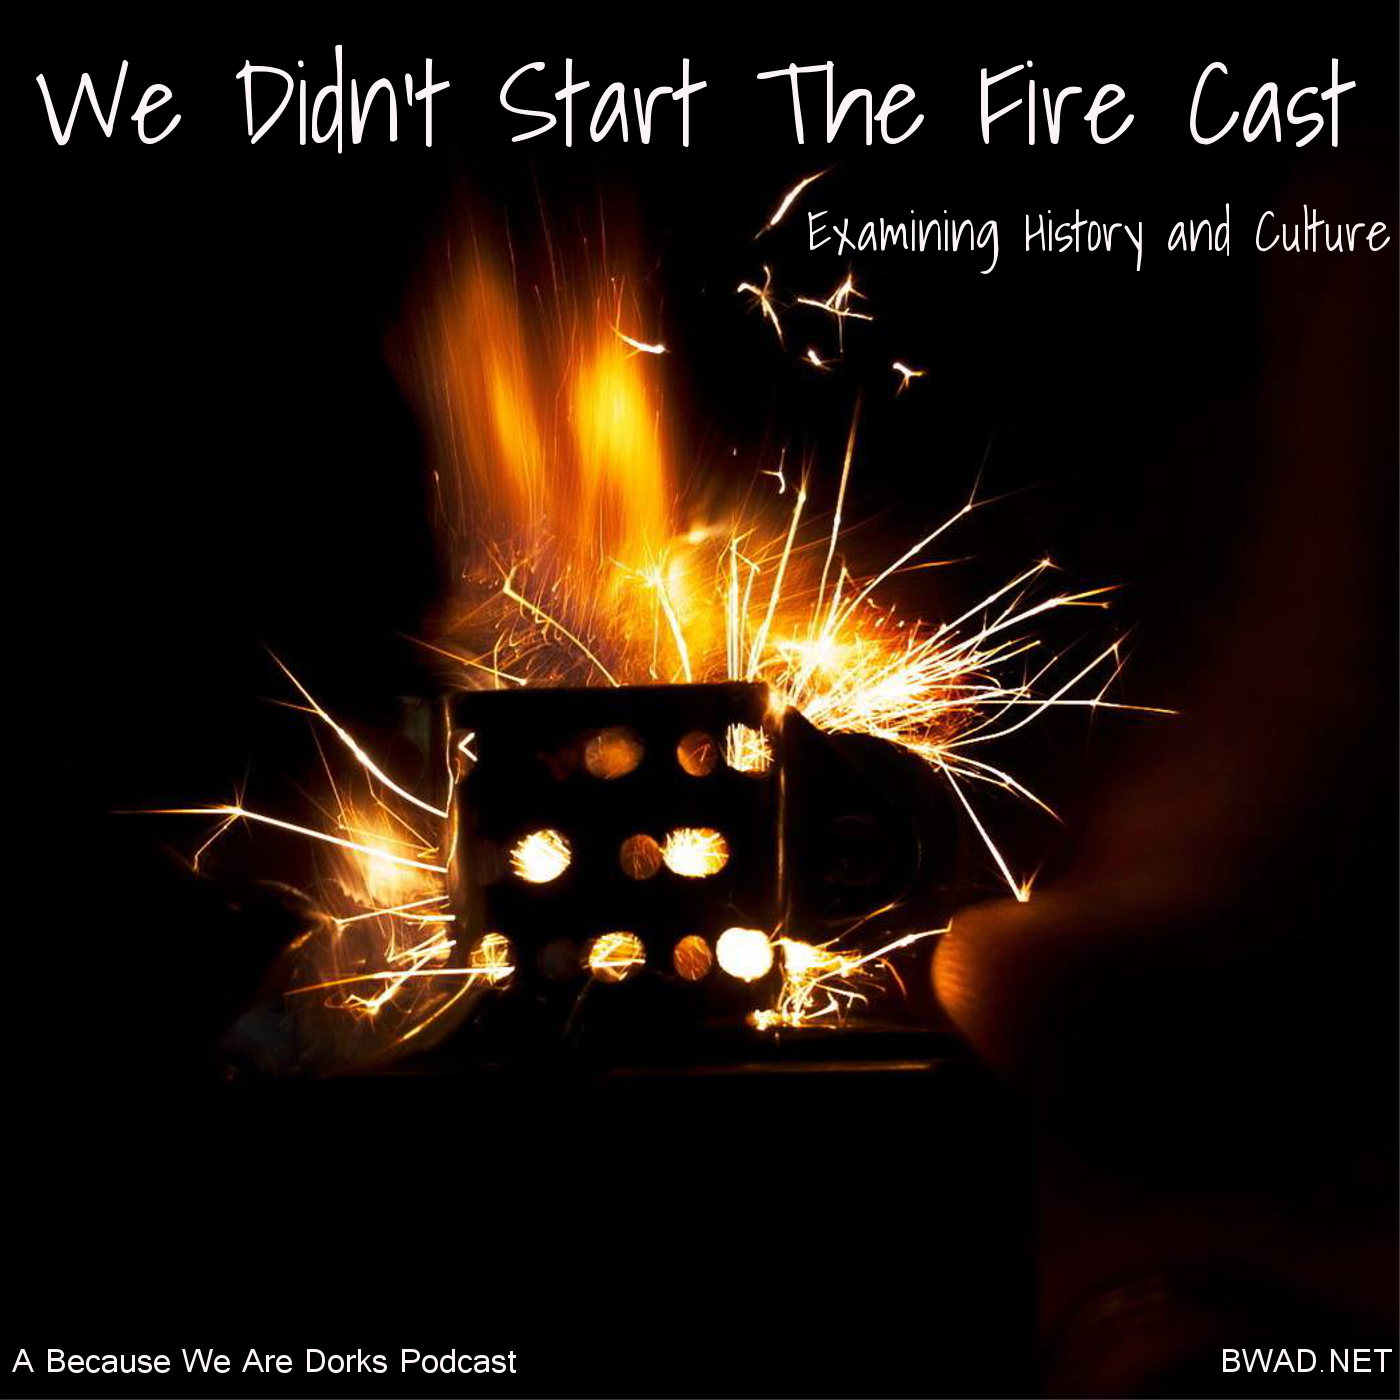 We Didn't Start The Fire Cast - Because We Are Dorks